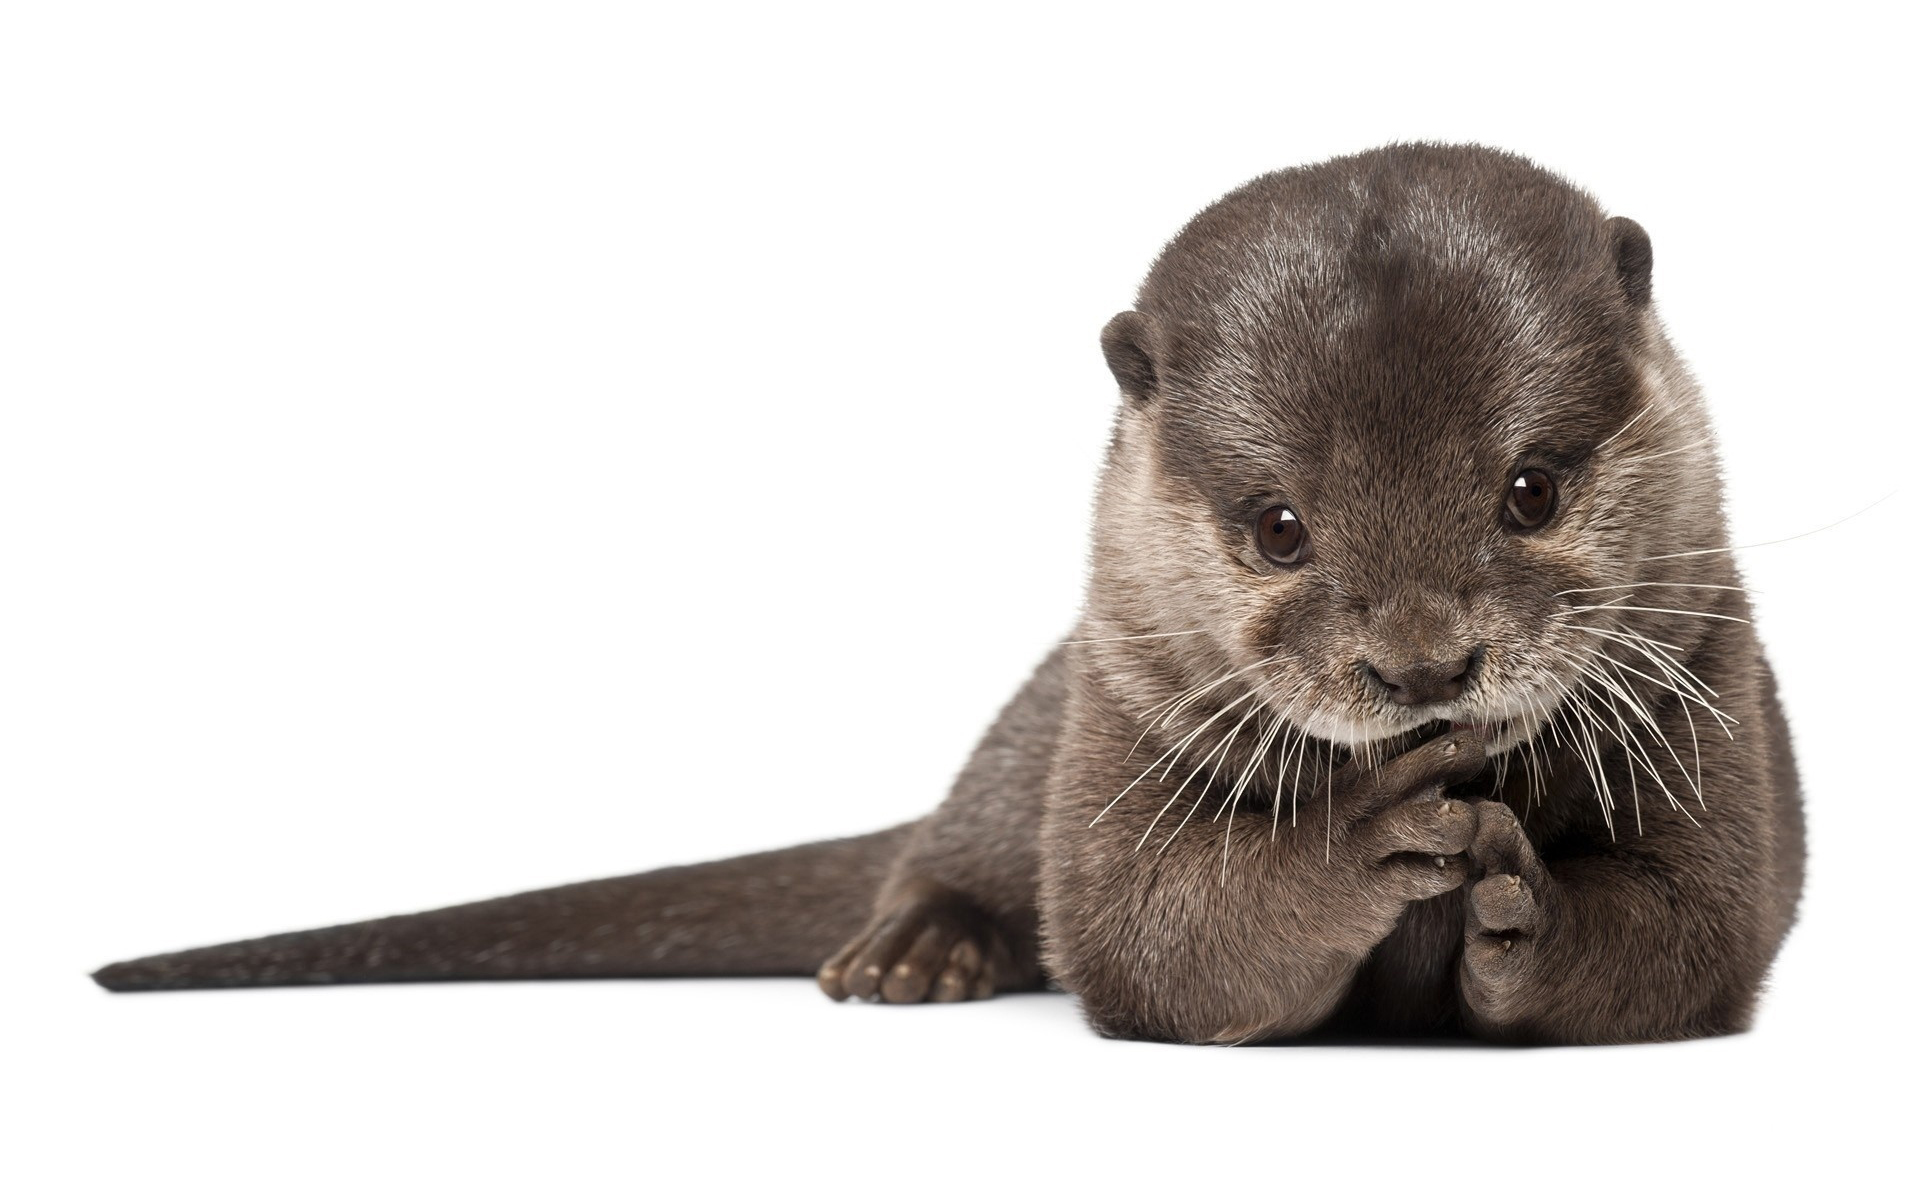 Cute Otter Wallpaper 11287